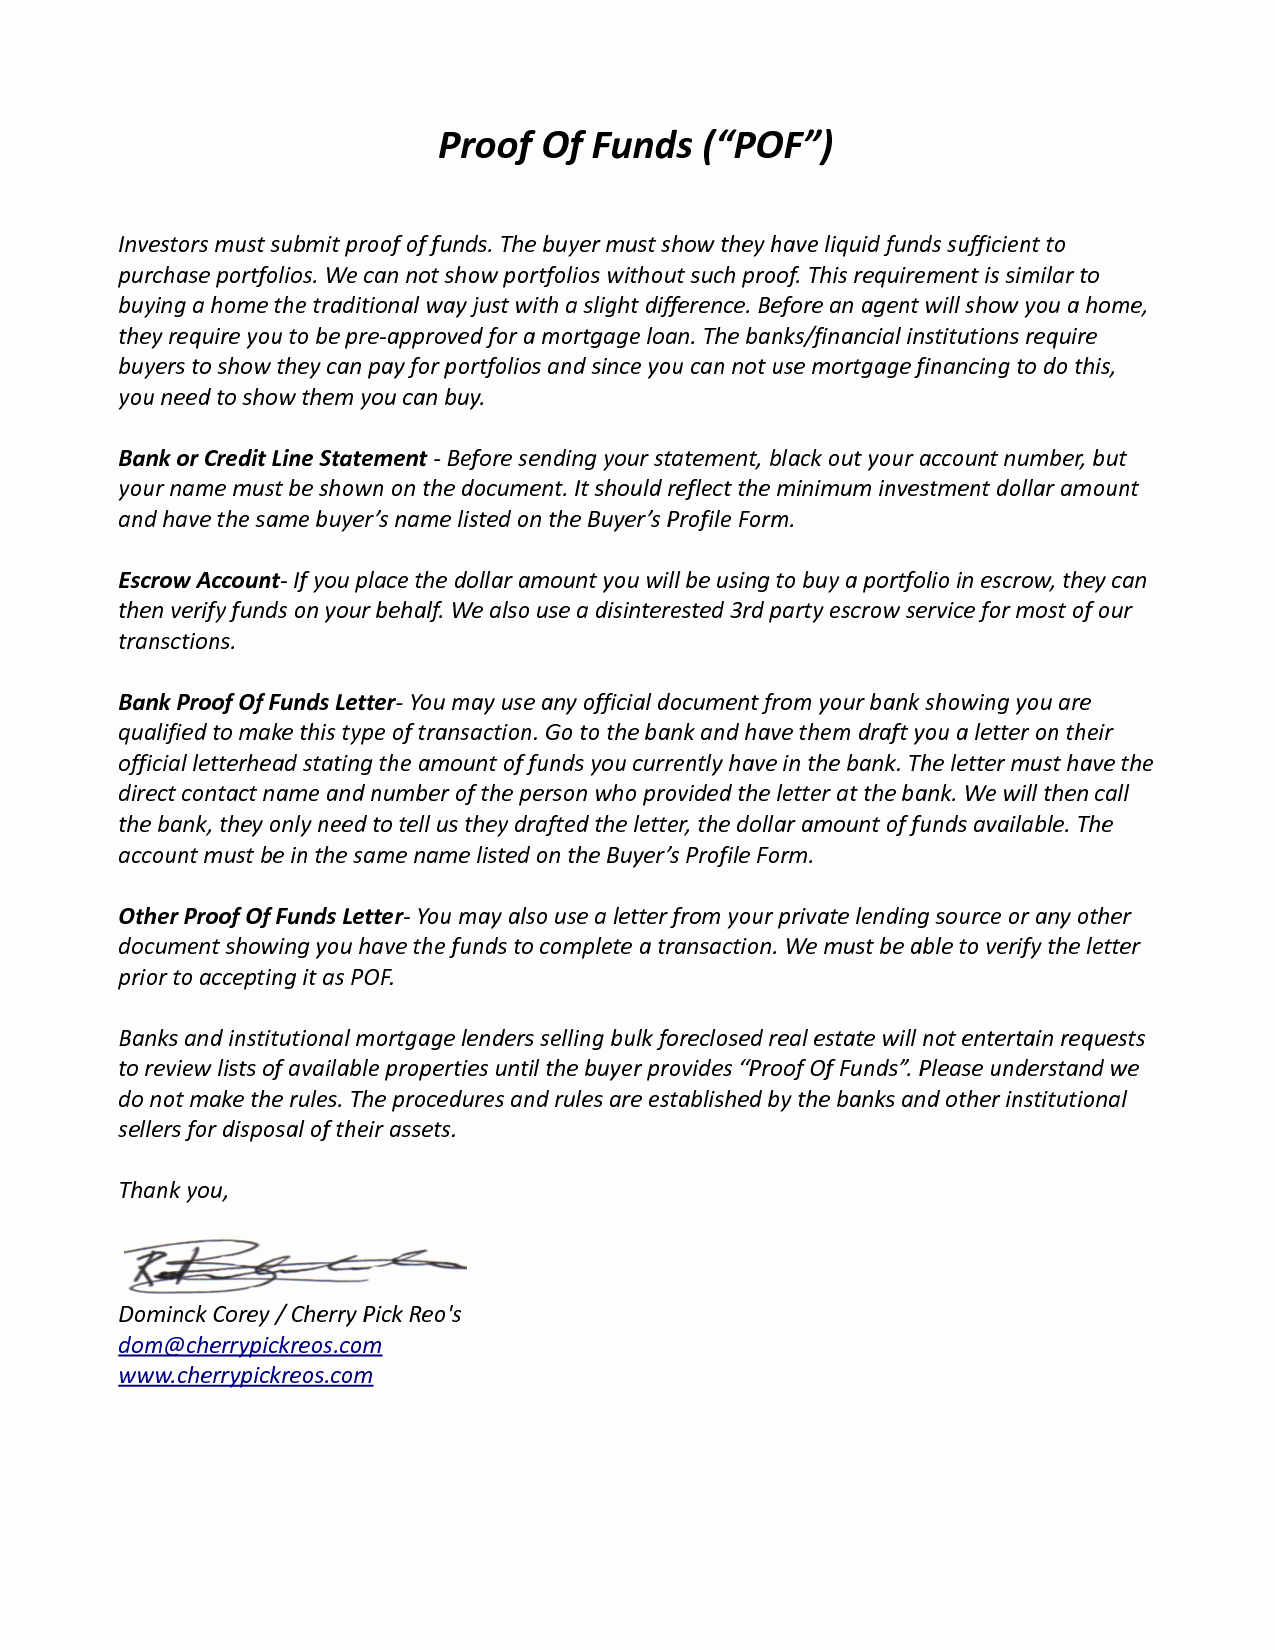 Proof Of Funds Letter Template Elegant Best S Of Proof Funds Letter Template Proof Of